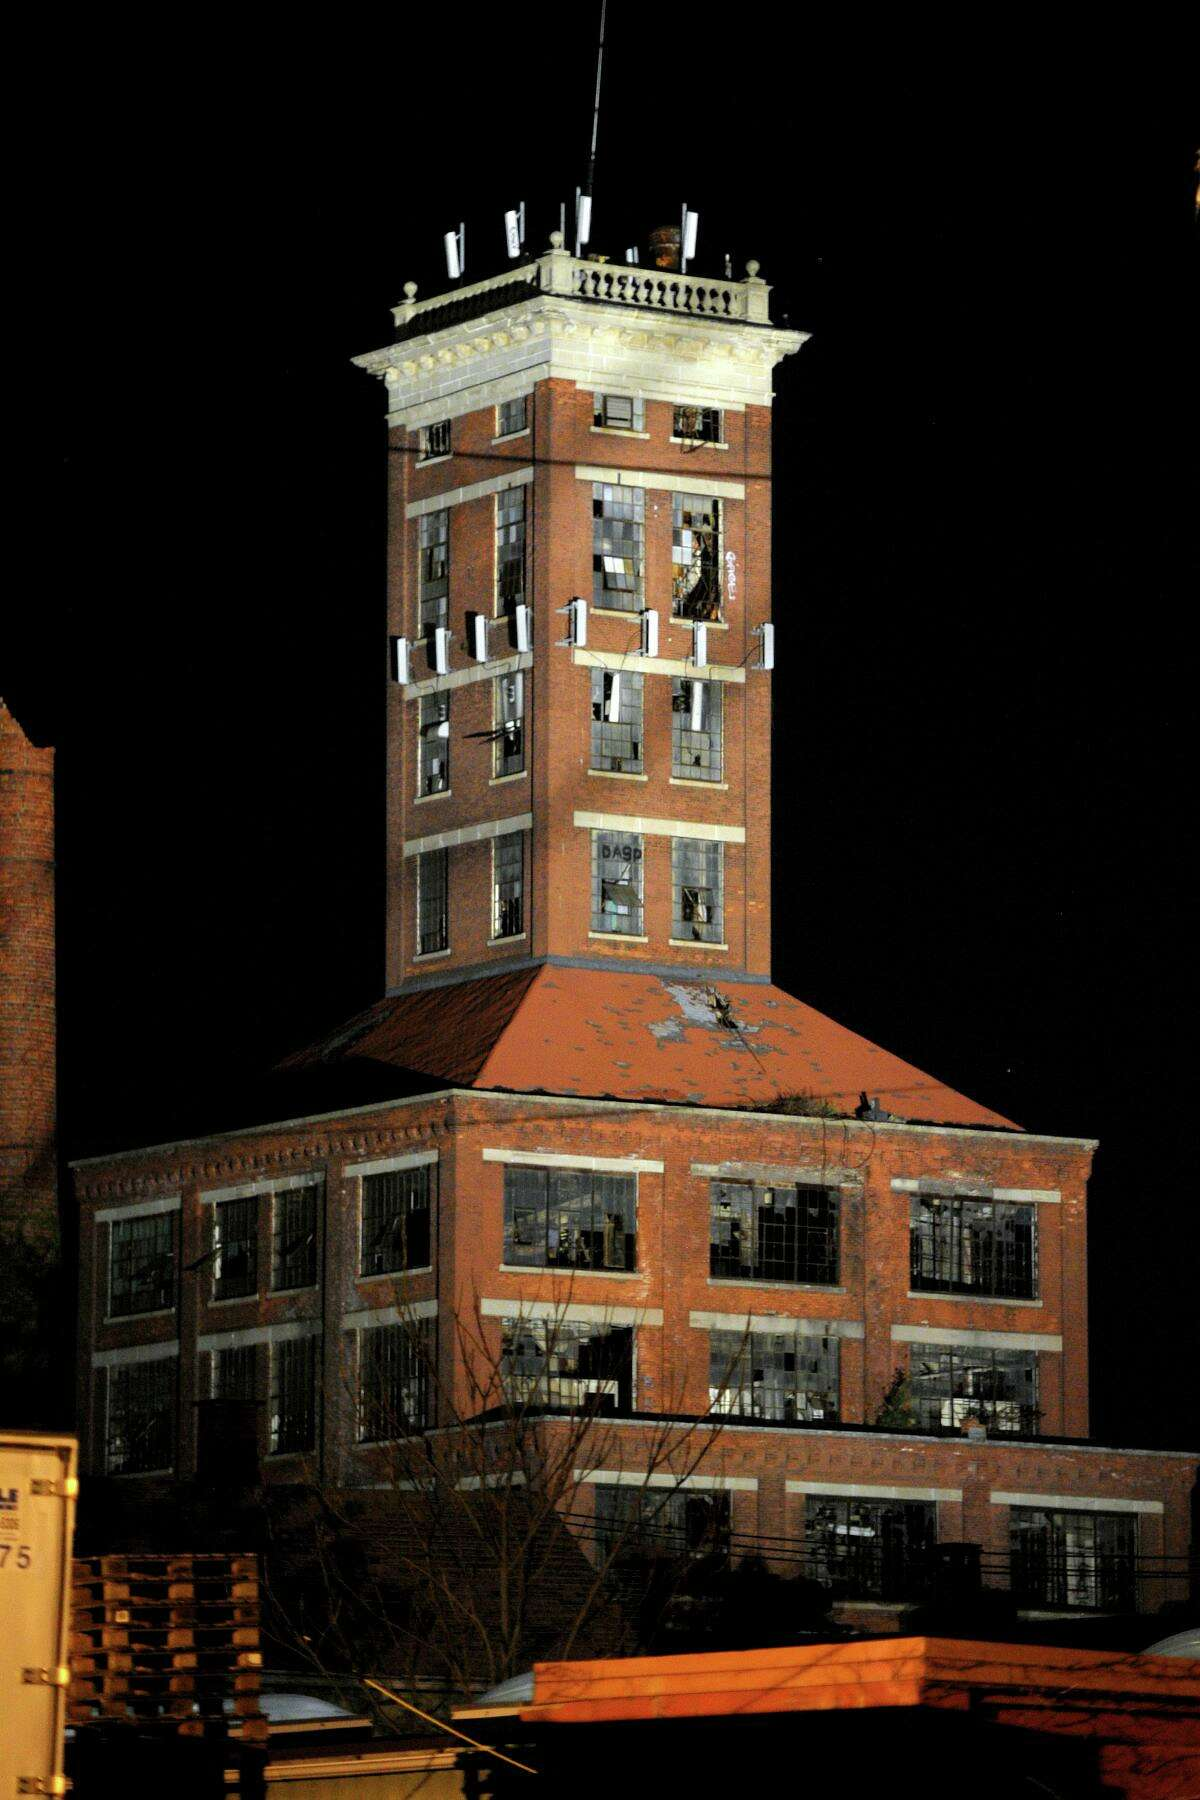 The ruins of the Remington Arms shot tower, built in 1909, stands lit by spotlights Saturday evening in Bridgeport, Conn. Oct. 5, 2019. The lighting event was staged by Colorblends Wholesale Flowerbulbs, who's warehouse is adjacent to the old Remington property in Bridgeport's east side.